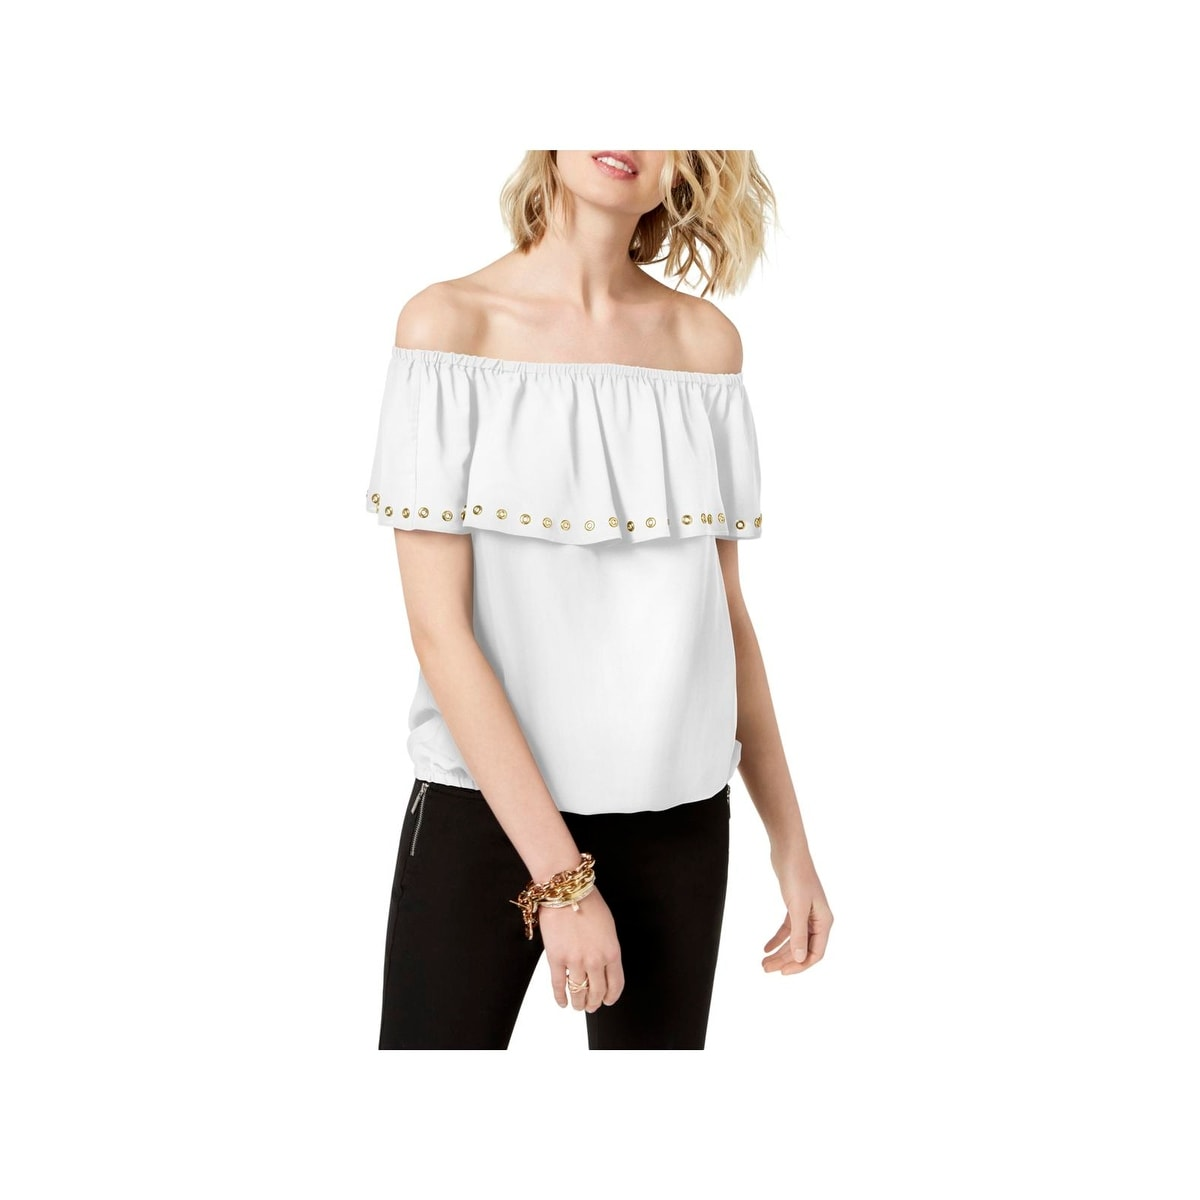 ae832ad25 MICHAEL Michael Kors Tops | Find Great Women's Clothing Deals Shopping at  Overstock